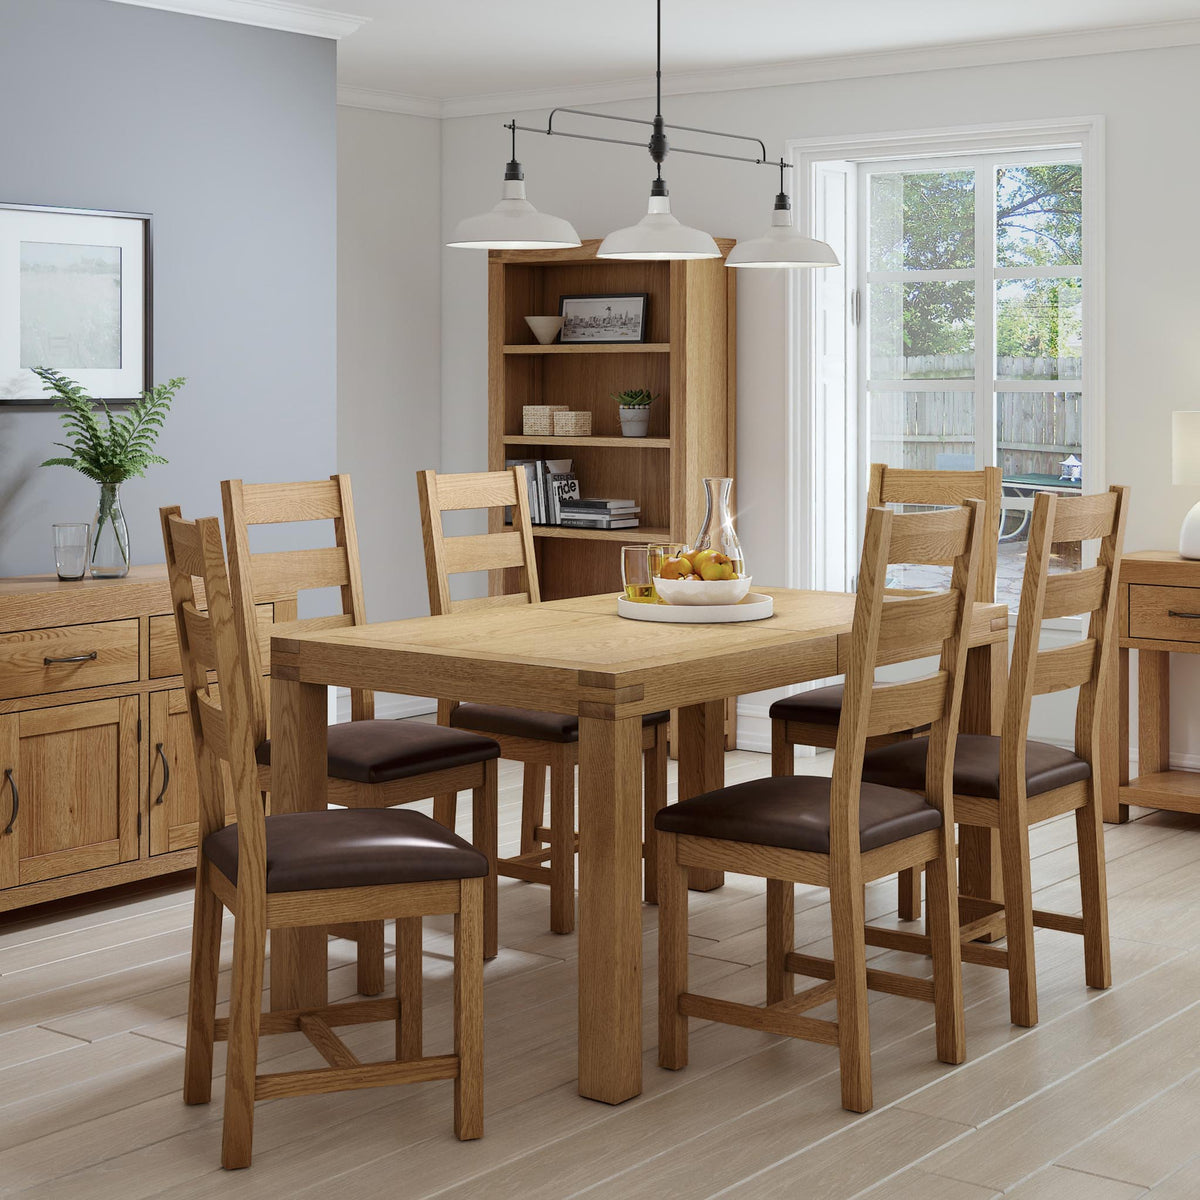 Abbey Grande Extending Dining Table - Lifestyle